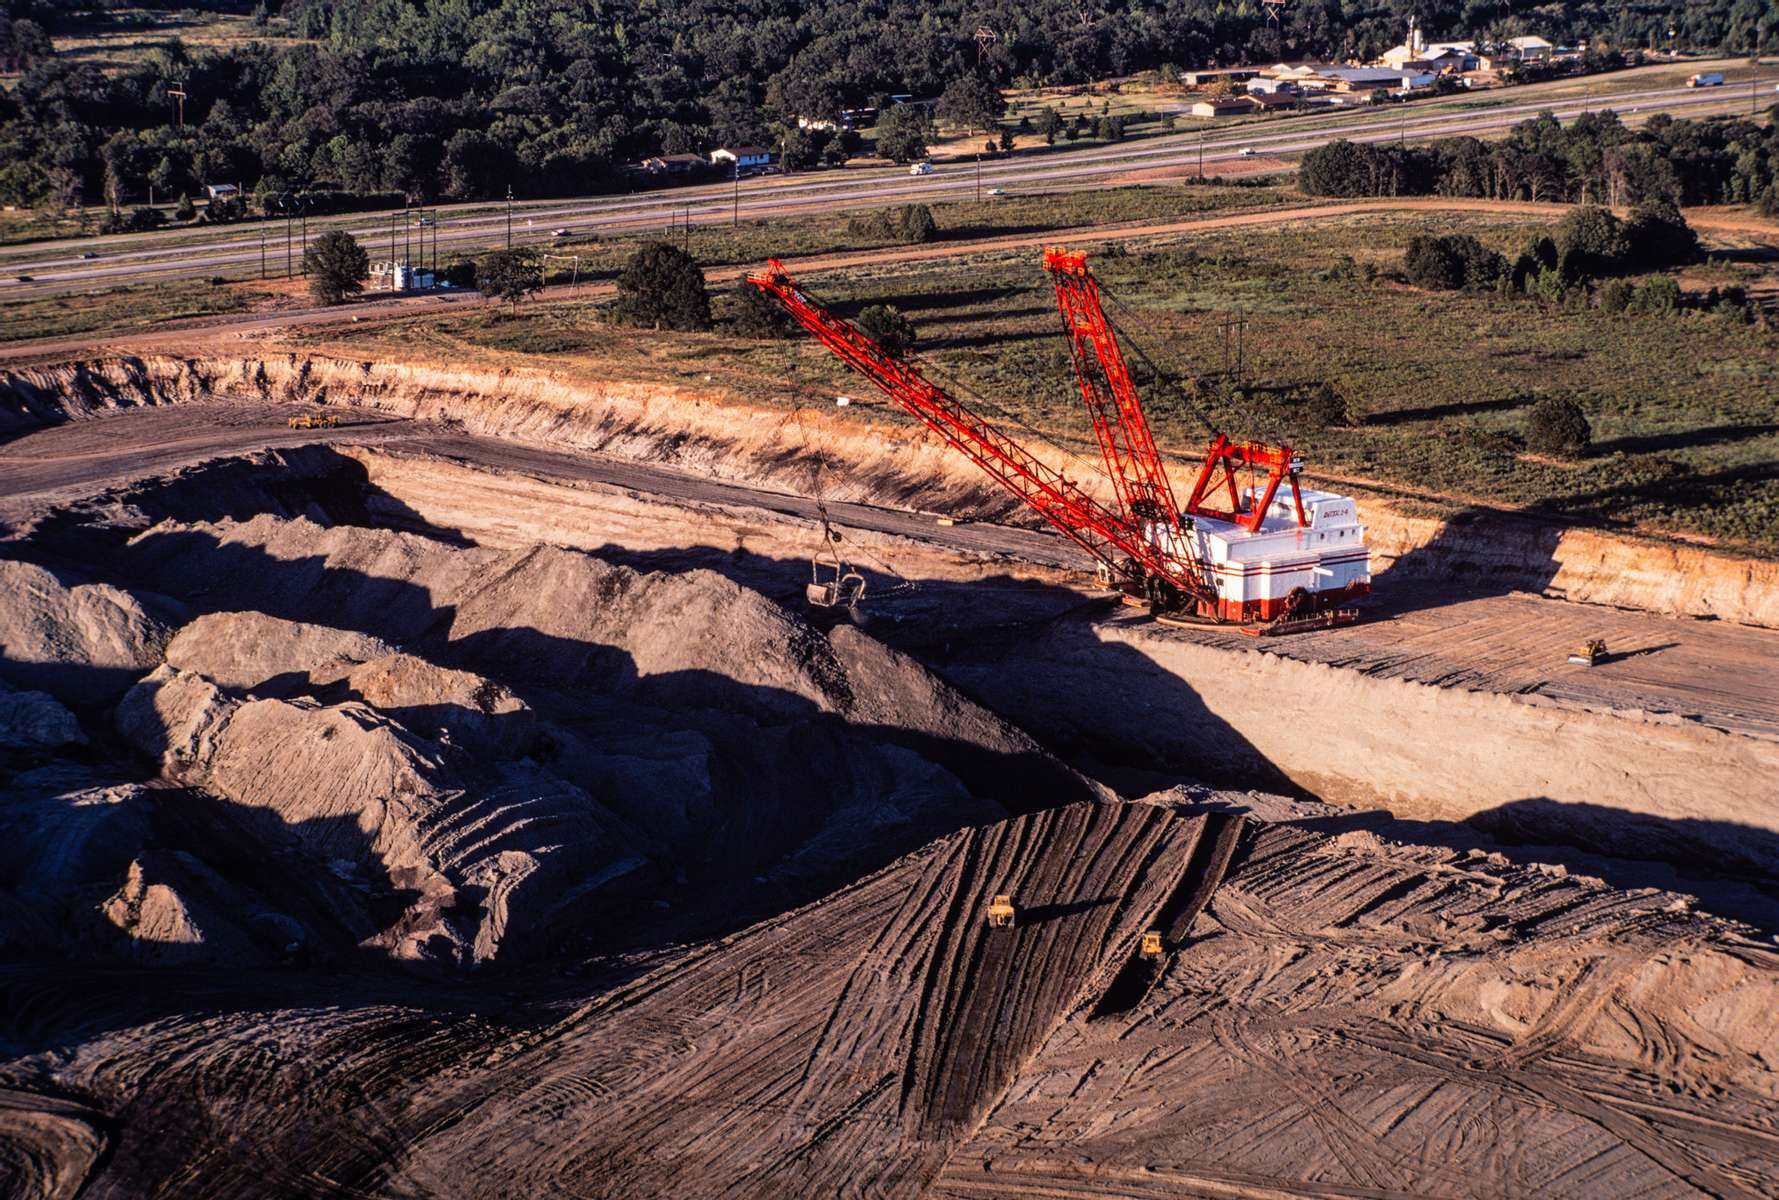 Aerial image of a Bucyrus Erie walking dragline excavating at the Winfield lignite coal strip mine near Interstate 30 and Mt. Pleasant, Texas. Bulldozers, in the foreground, move overbiurden. The mine and the Monticello Power Plant that it fed have now been closed.